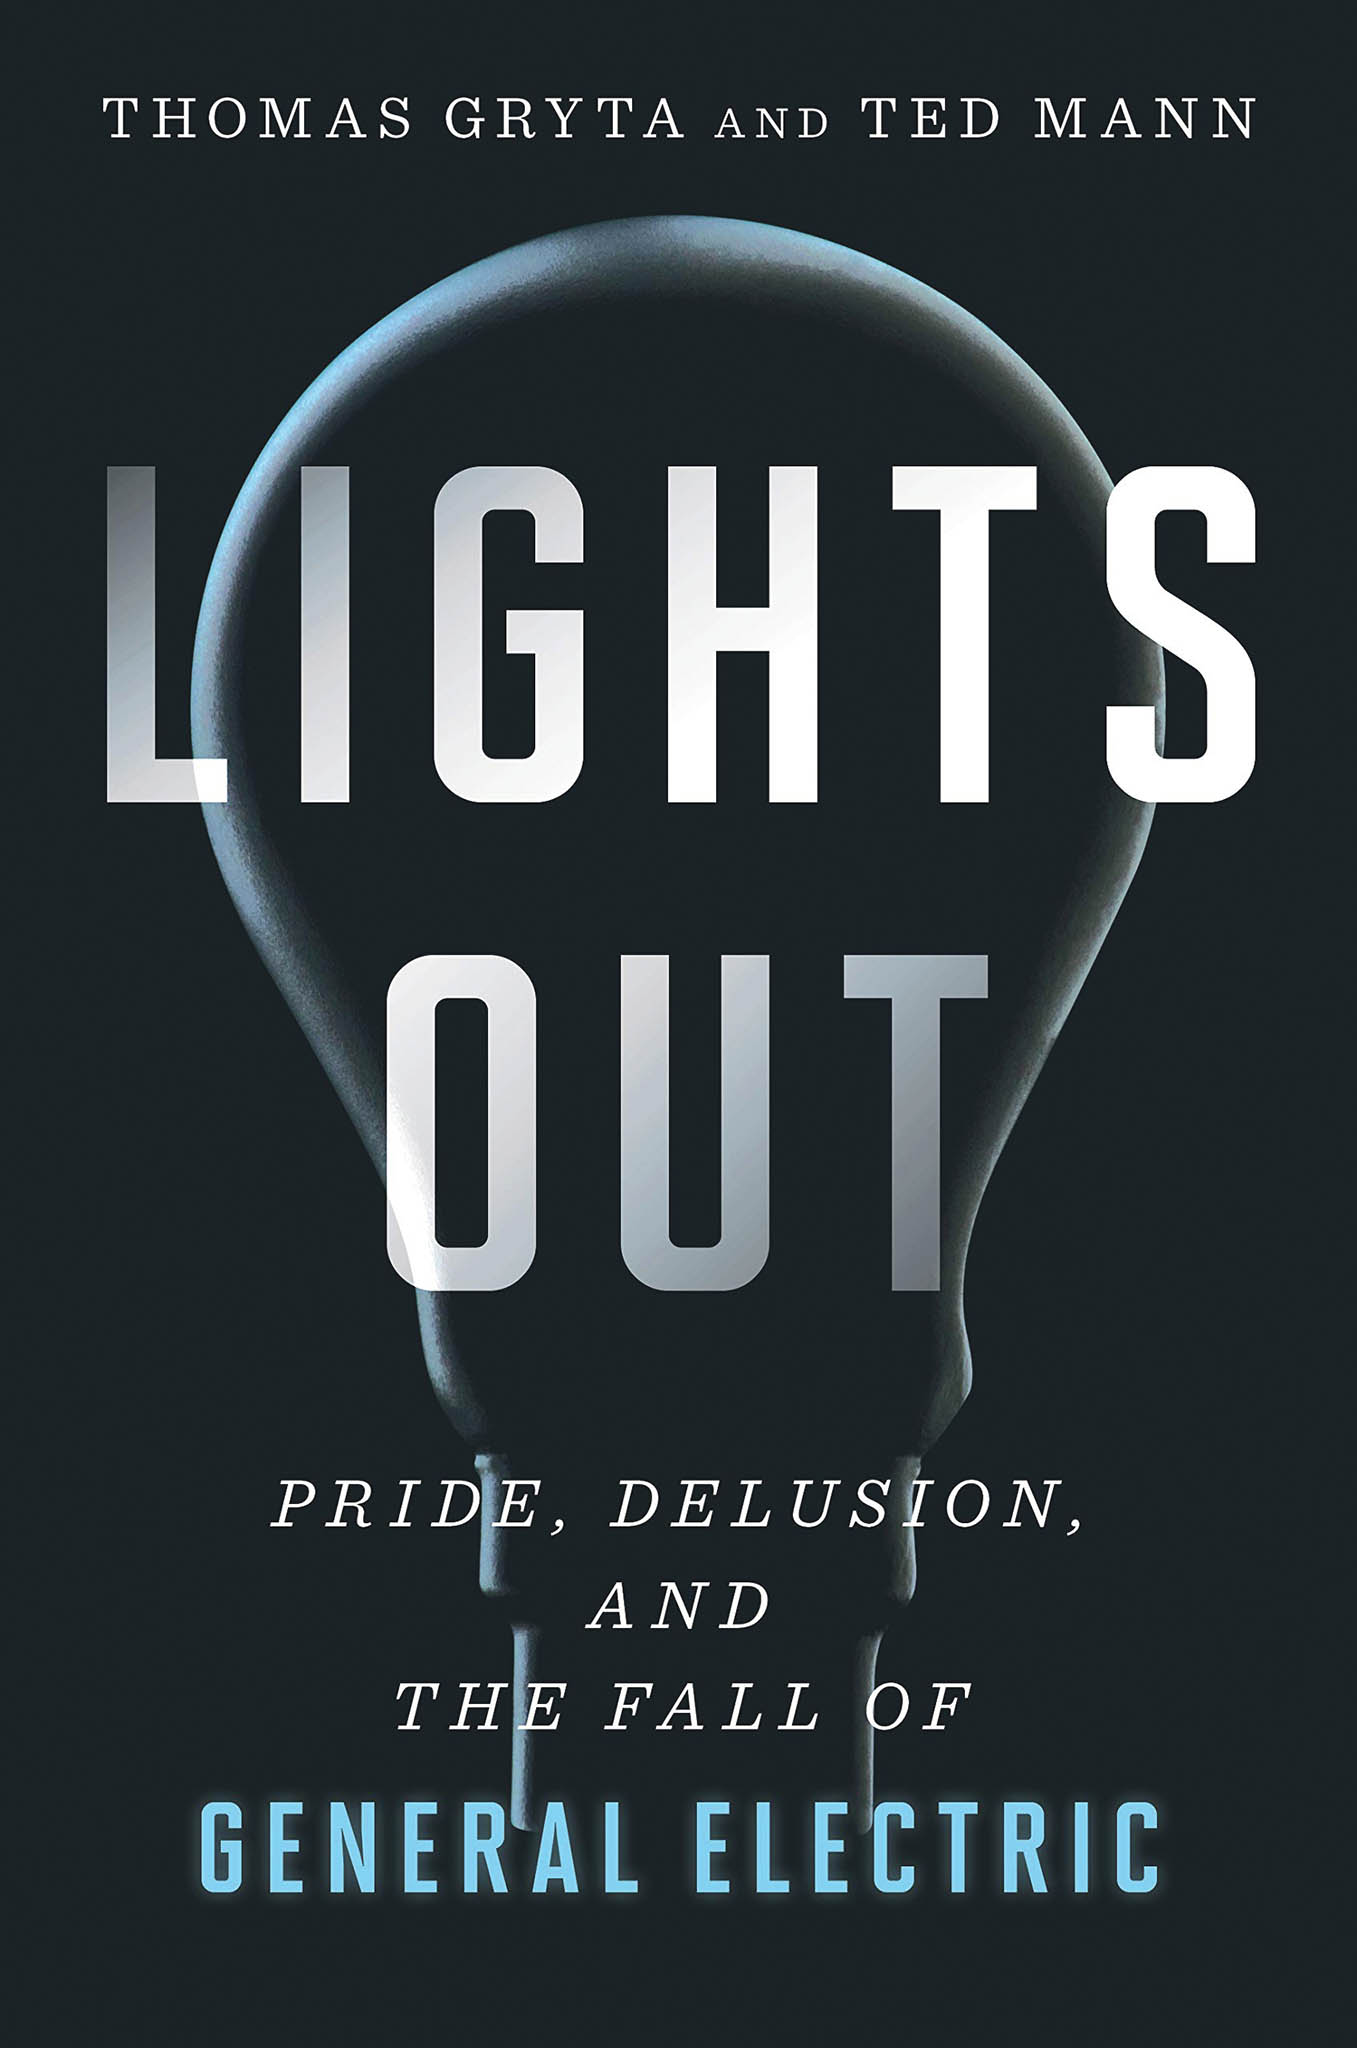 Thomas Gryt, Ted Mann Lights Out: Pride, Delusion, and the Fall of General Electric (nakladatelství Houghton Mifflin Harcourt, 2020, 368 s.)